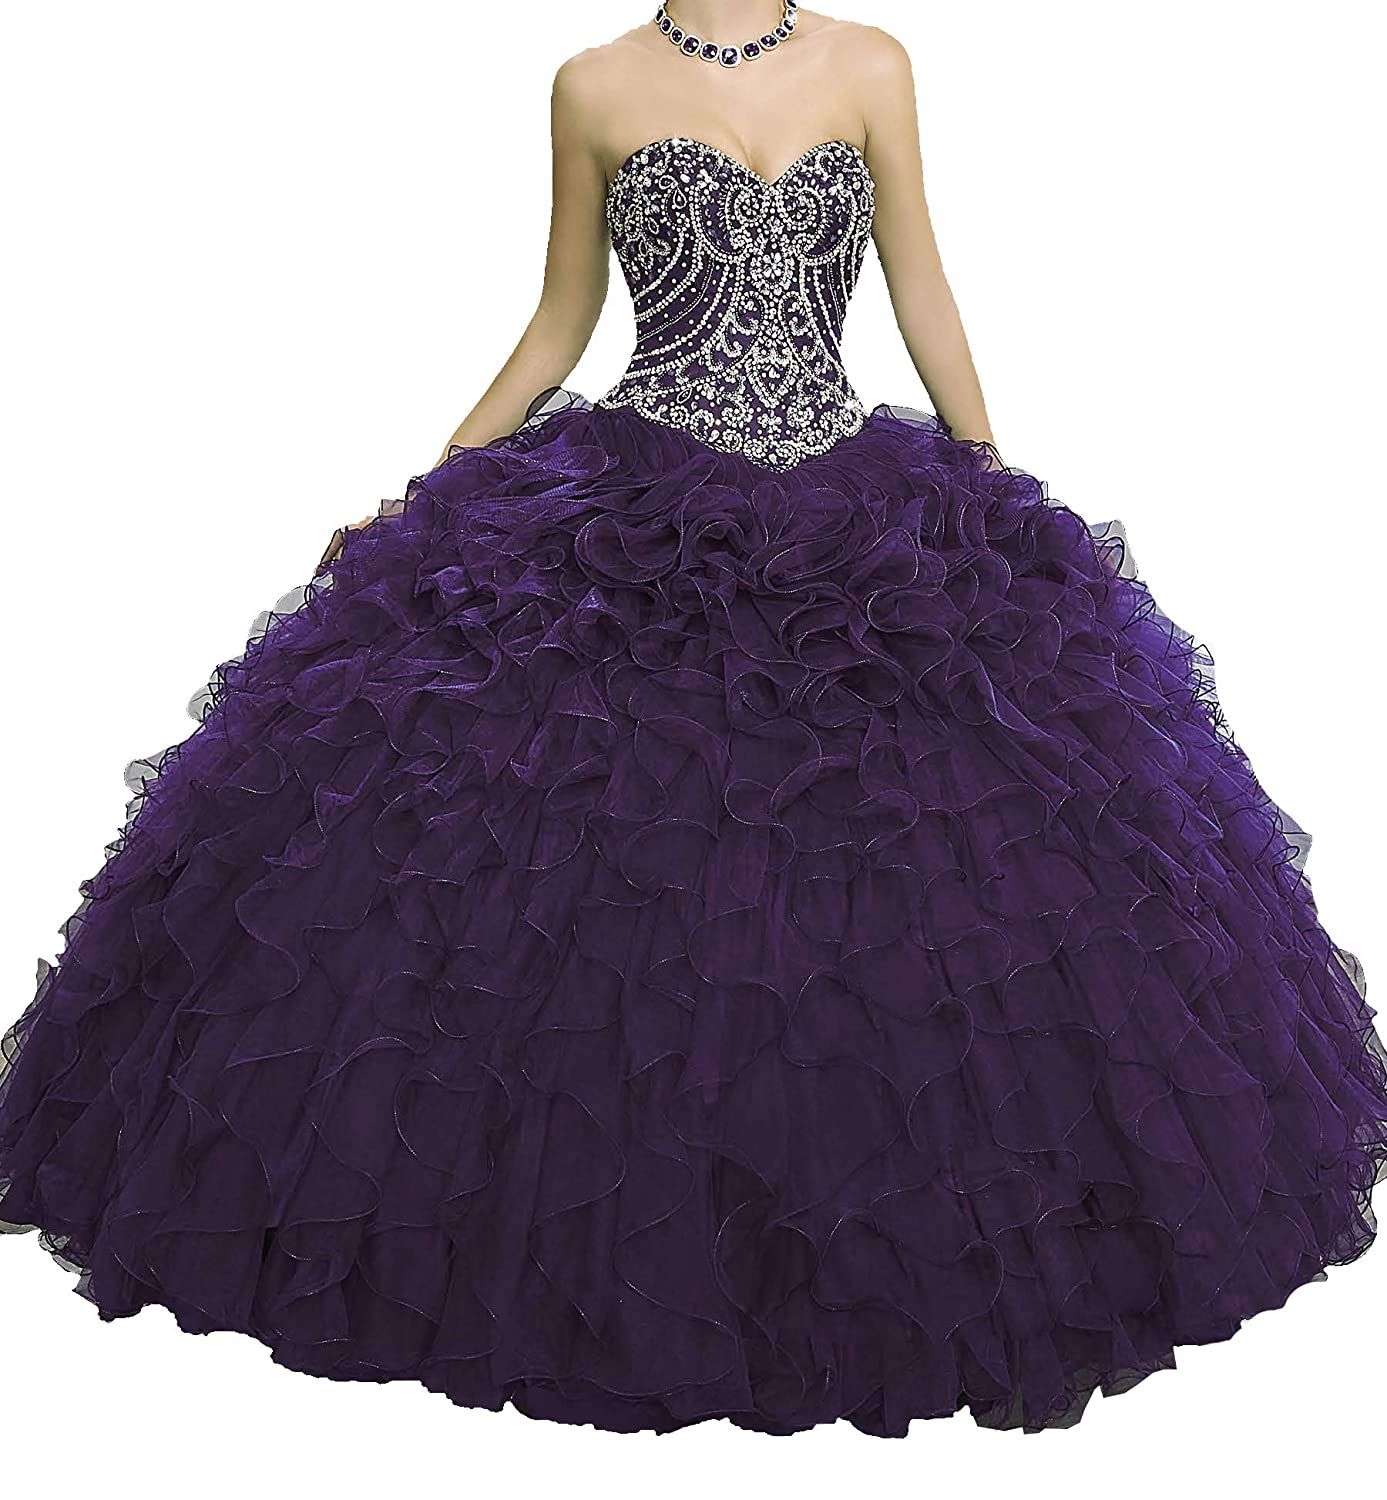 Dark Purple Yang Women Sweetheart Quinceanera Dress Floor Length Girls Ball Gowns